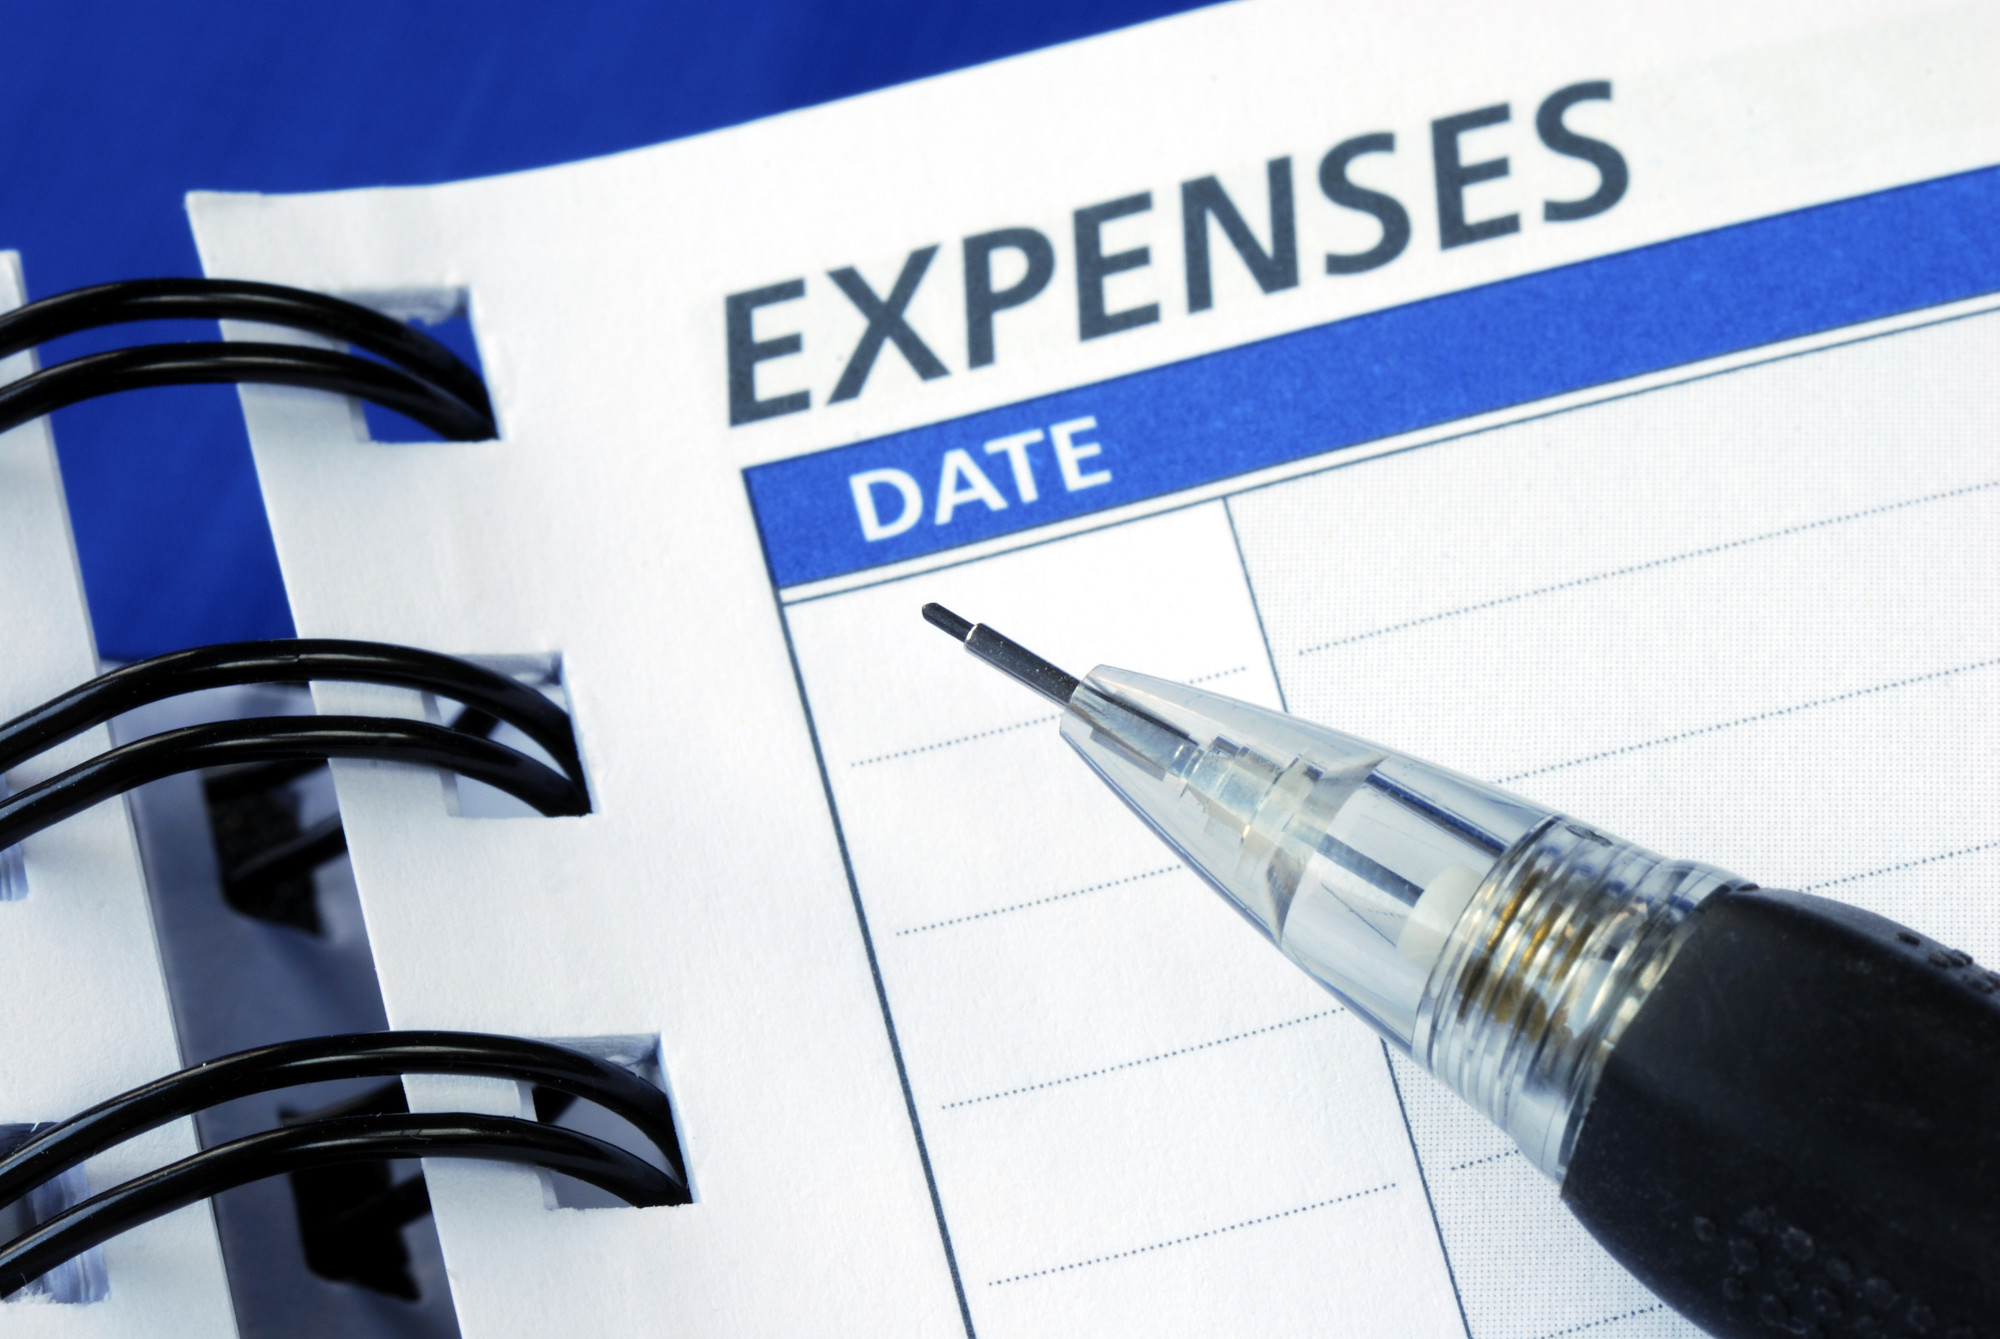 Business Expenses